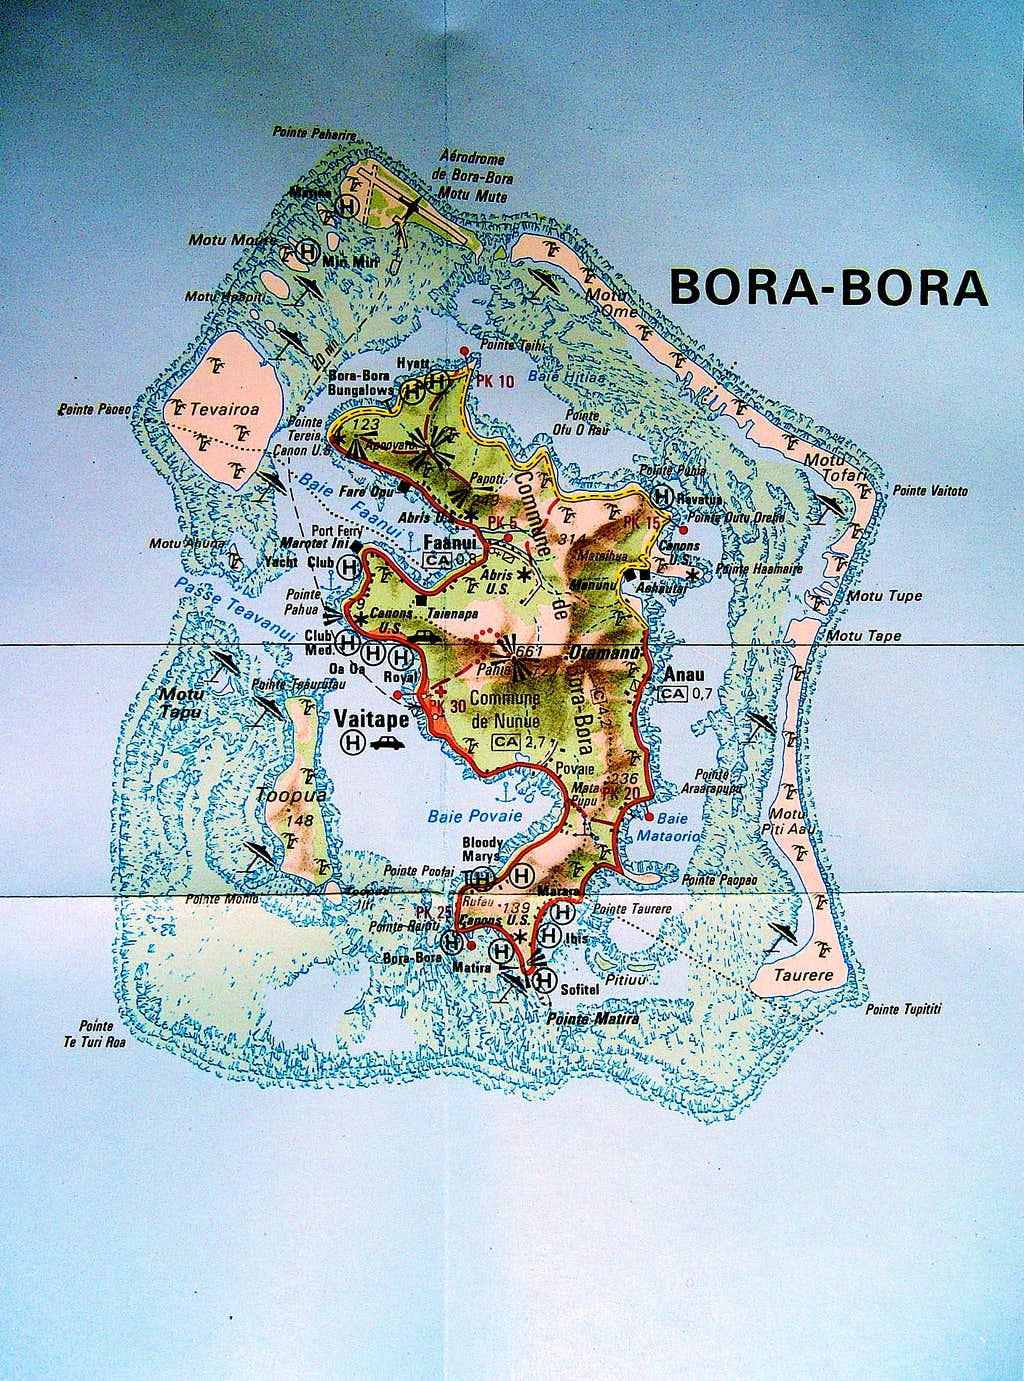 Bora Bora Map : Photos, Diagrams & Topos : SummitPost